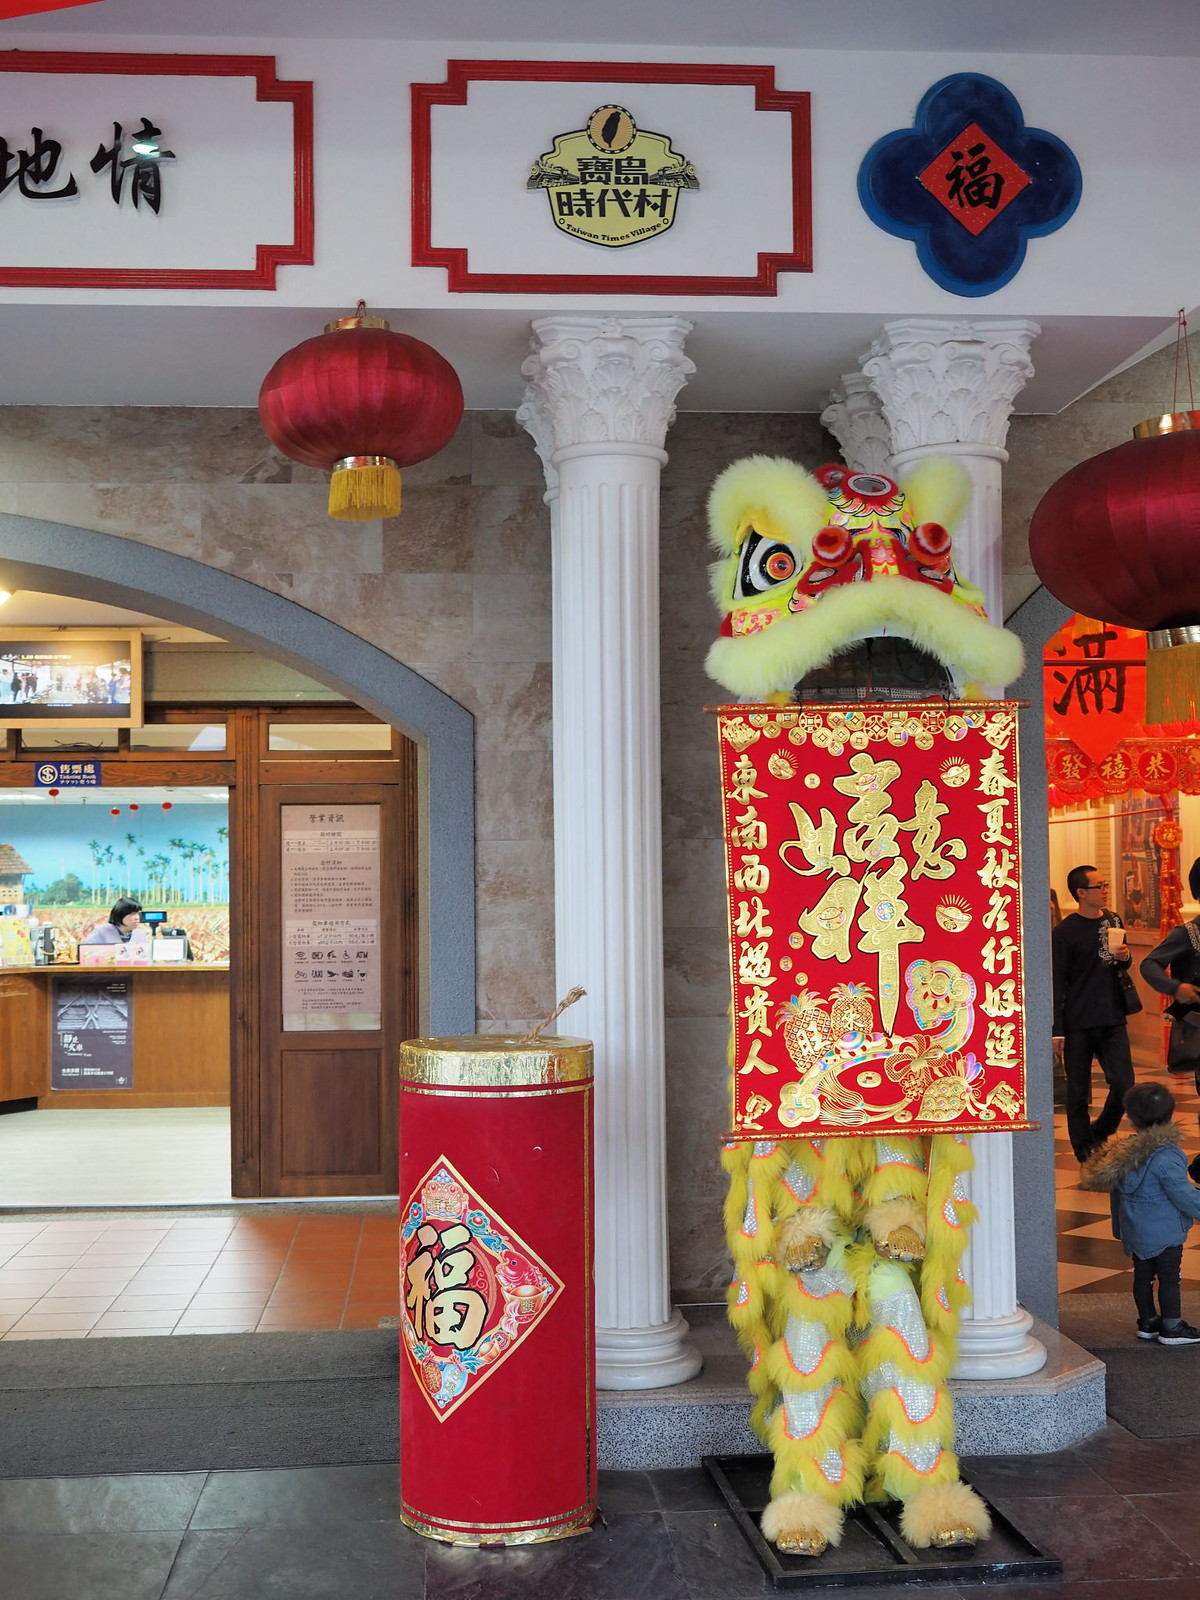 A lion dance at the entrance to the Taiwan Times Village 寶島時代村